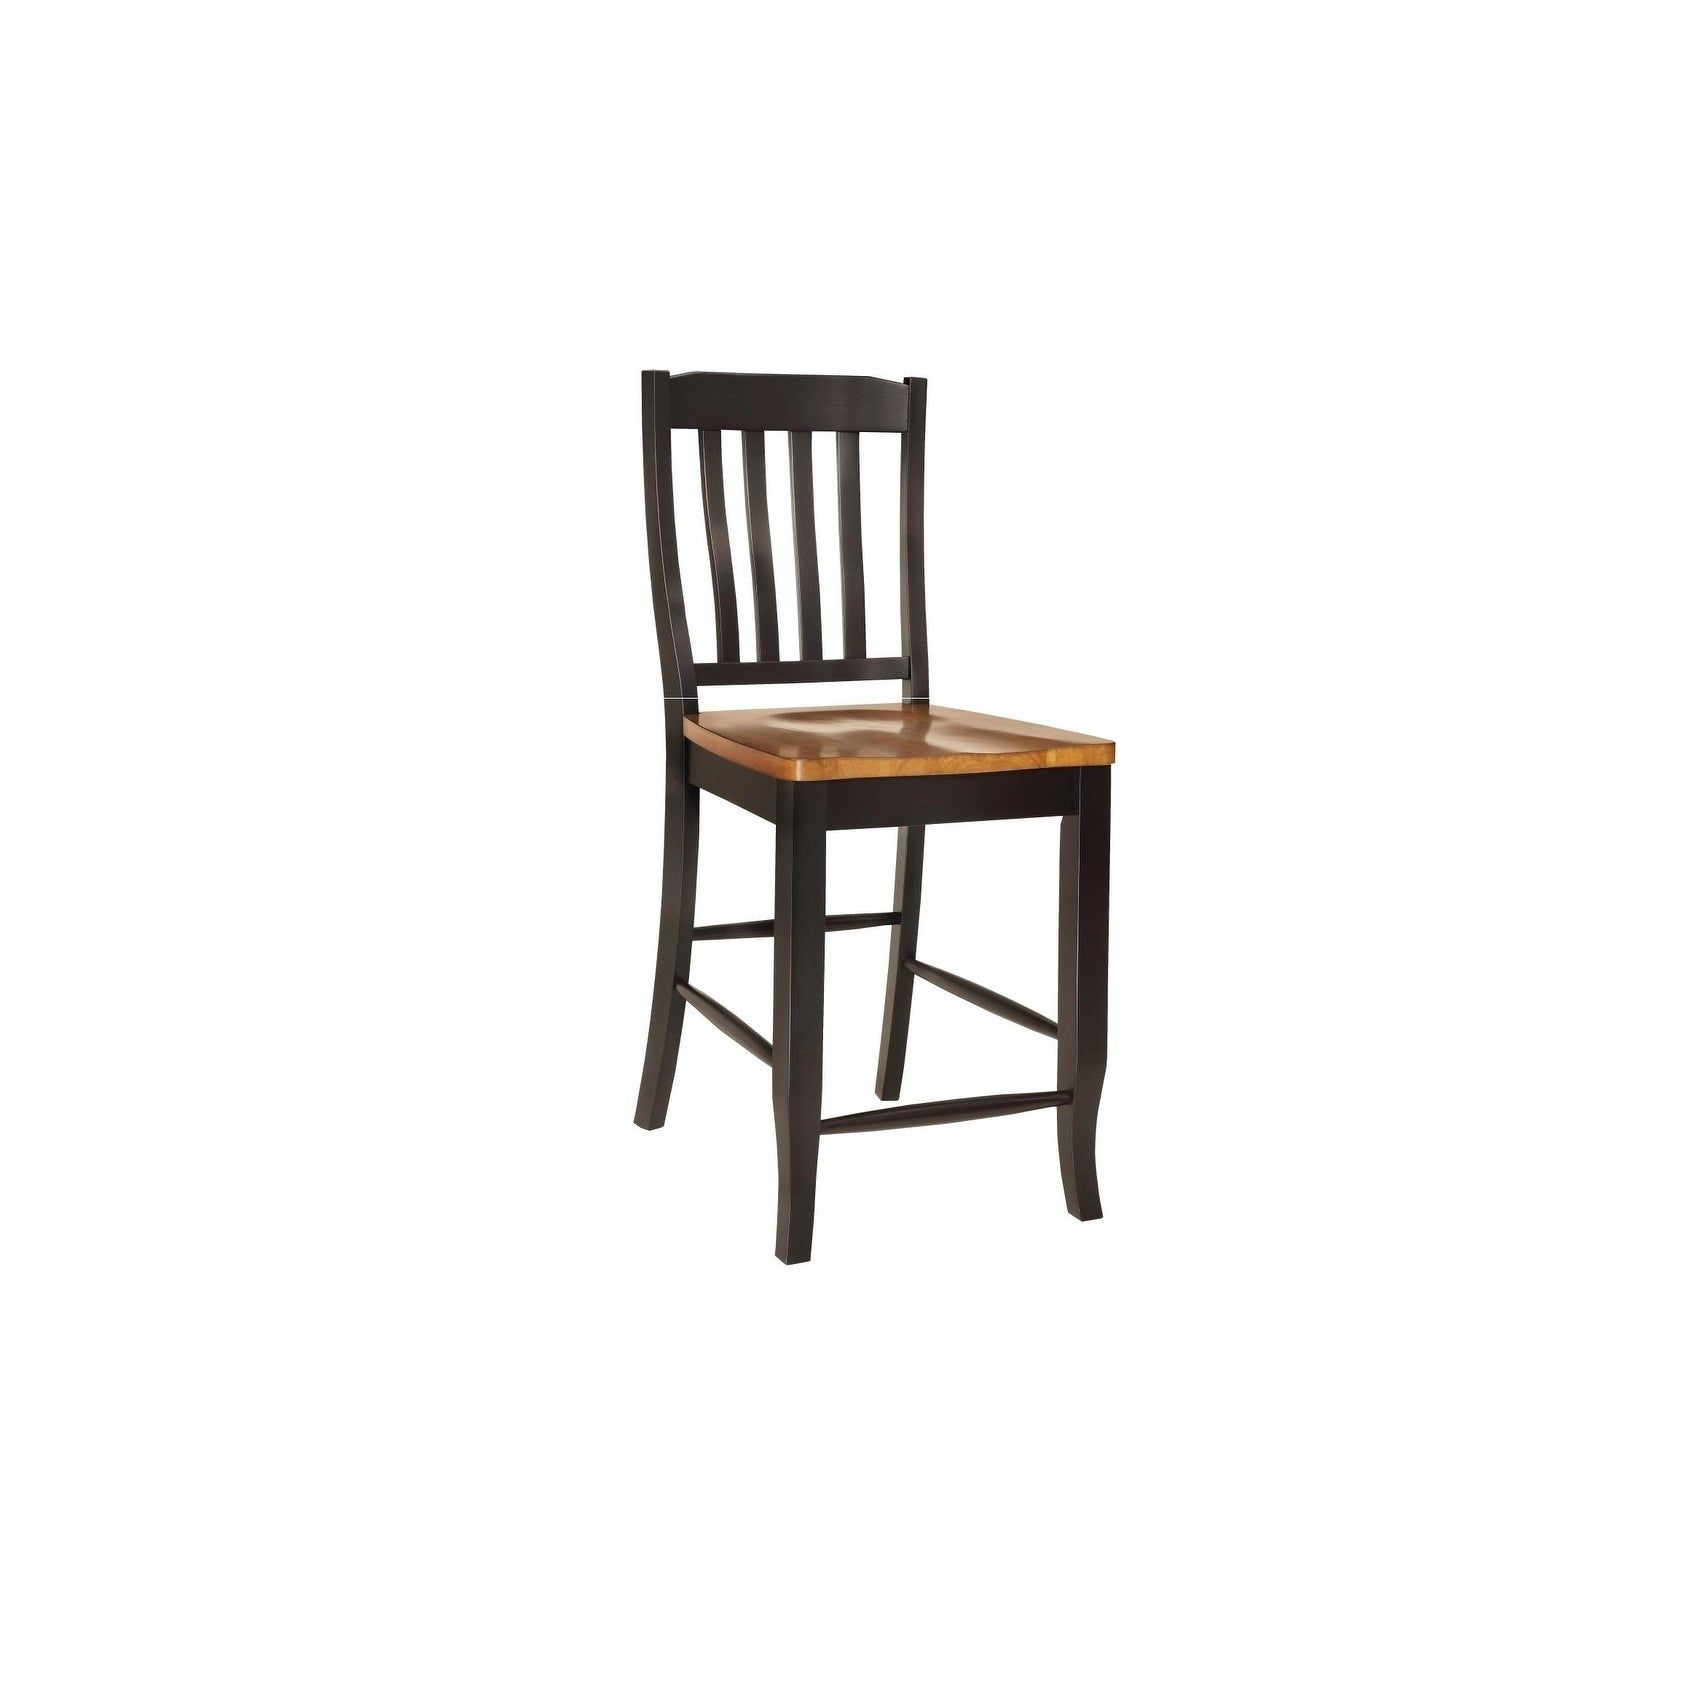 Magnificent Talys Harvest And Black 24 Inch Counter Stool Products In Camellatalisay Diy Chair Ideas Camellatalisaycom